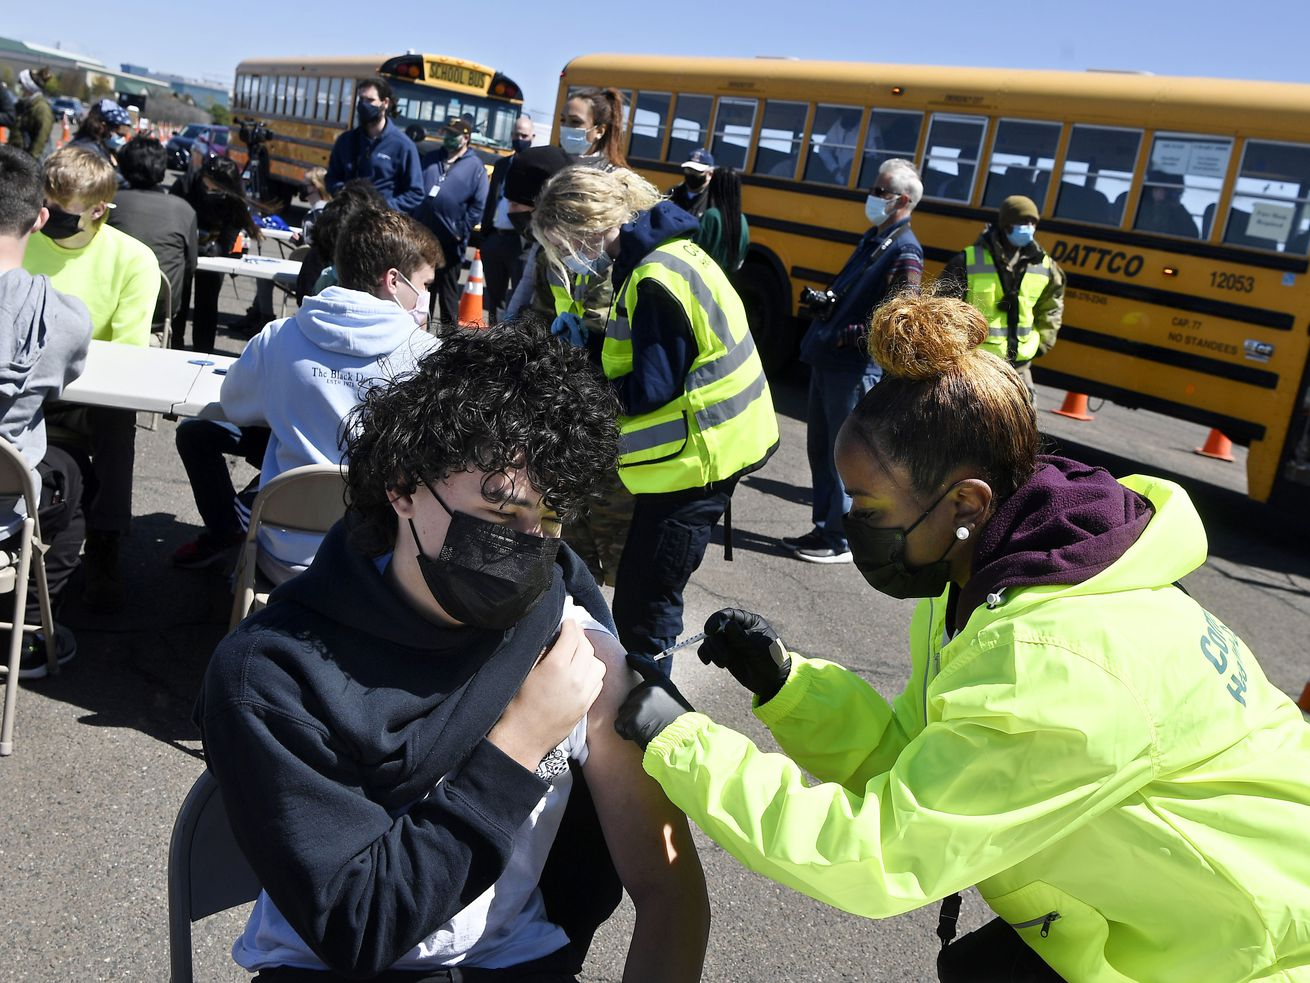 In this April 26, 2021, file photo, CREC Academy of Aerospace and Engineering sophomore Brian Acevedo, 16, receives a COVID-19 vaccine from nurse Myra Glass, of East Hartford, during a mass vaccination site at Pratt & Whitney Runway in East Hartford, Conn.